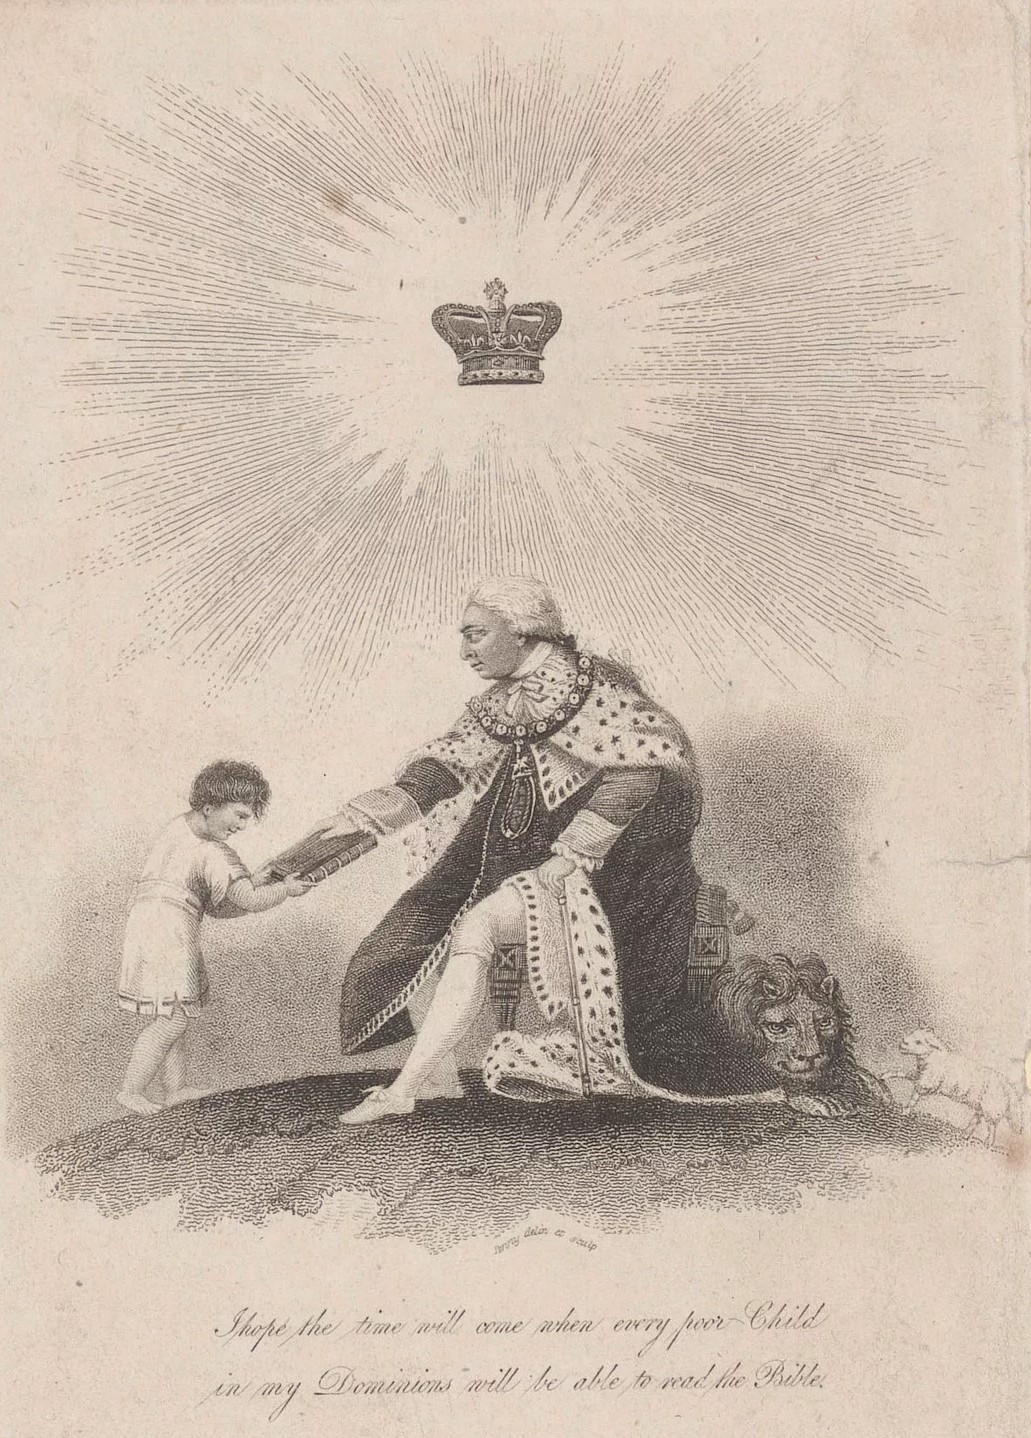 Etching of George III as king with crown hovering above his head and emitting rays of light